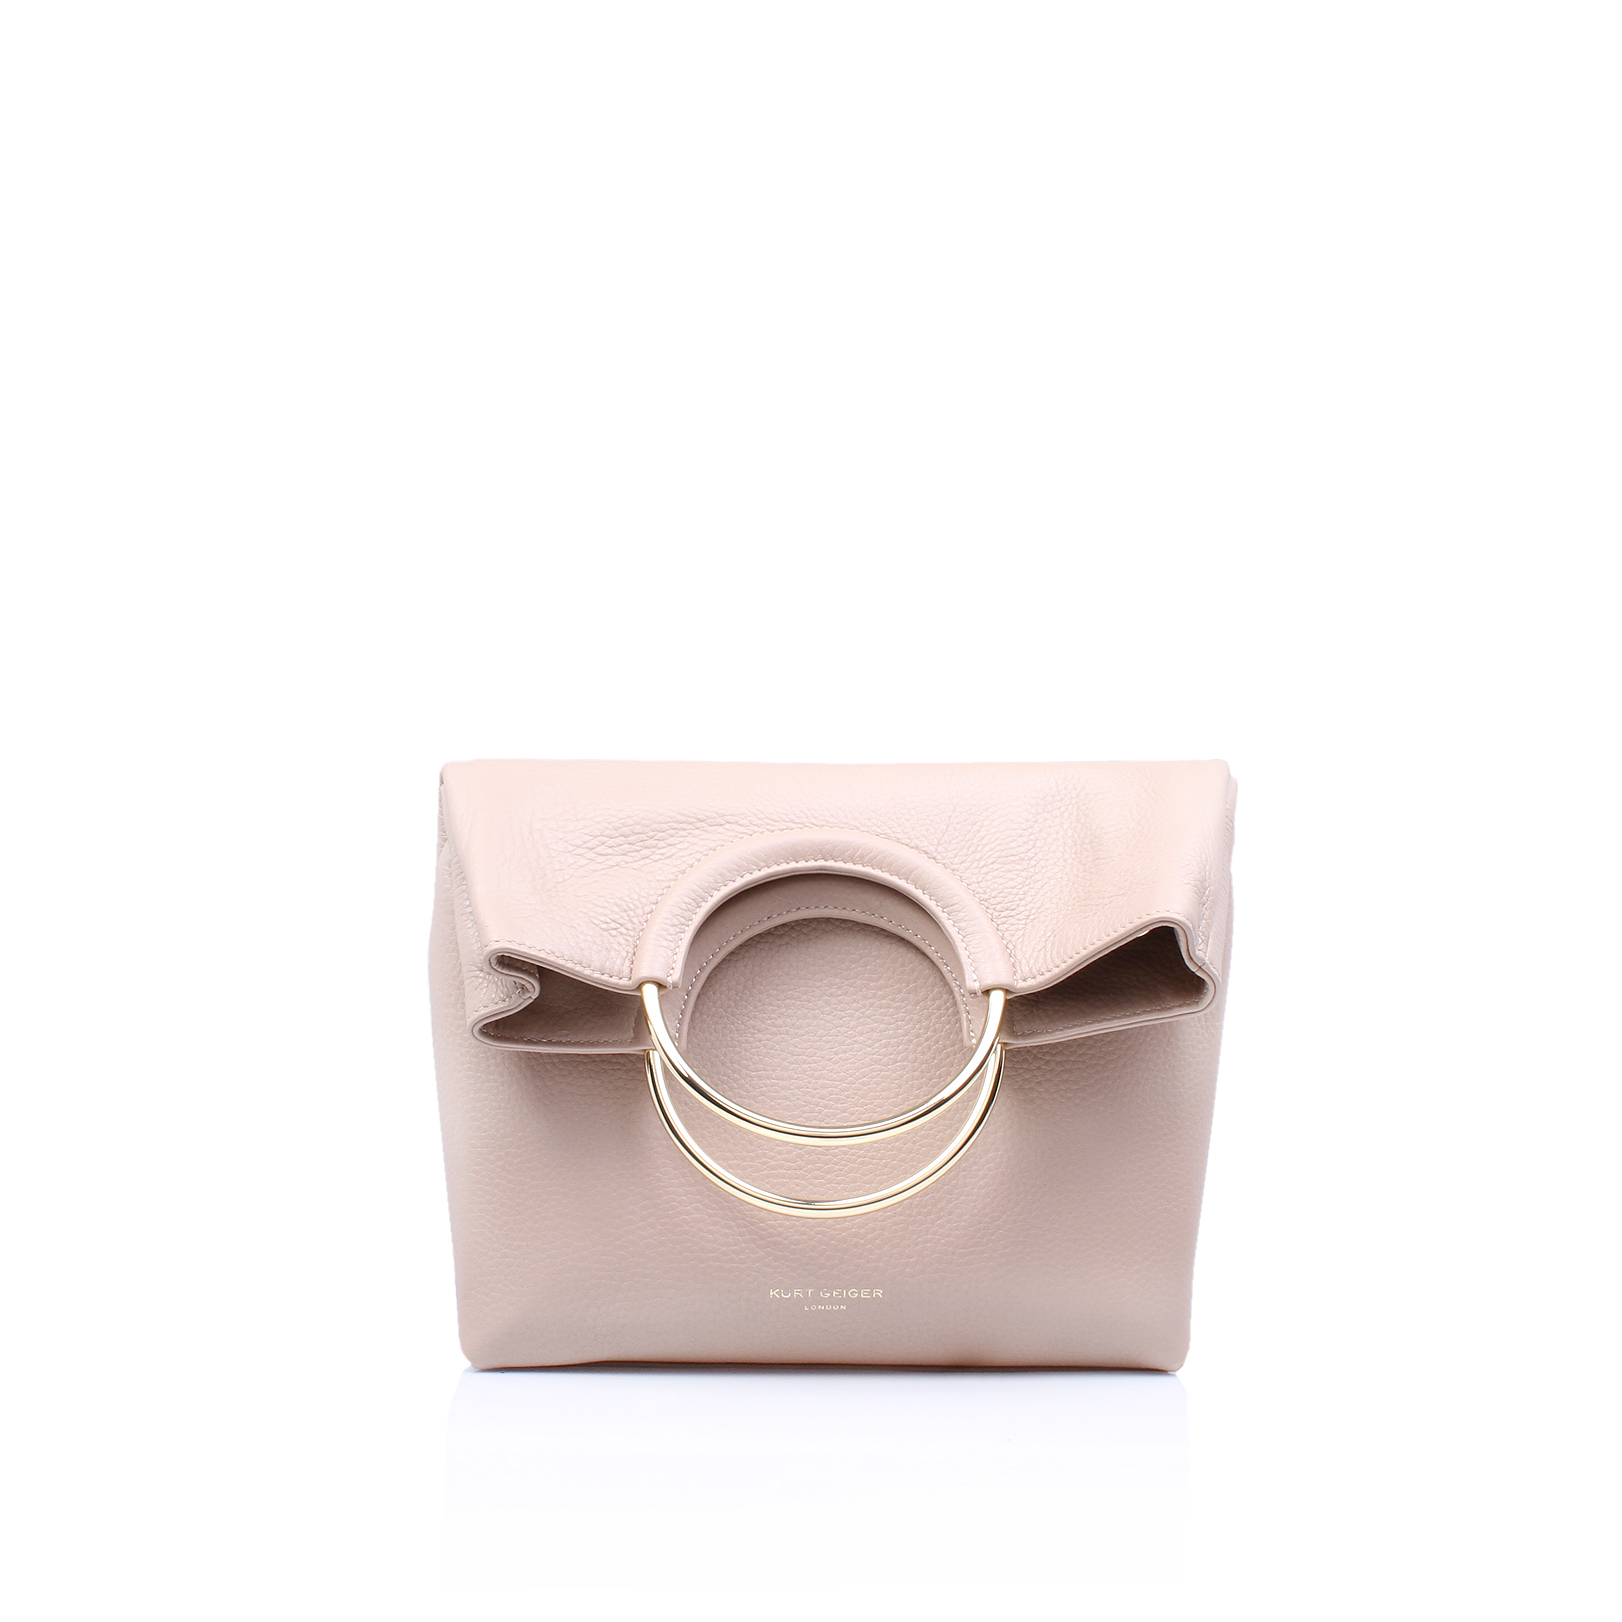 LEATHER BAGUE BAG